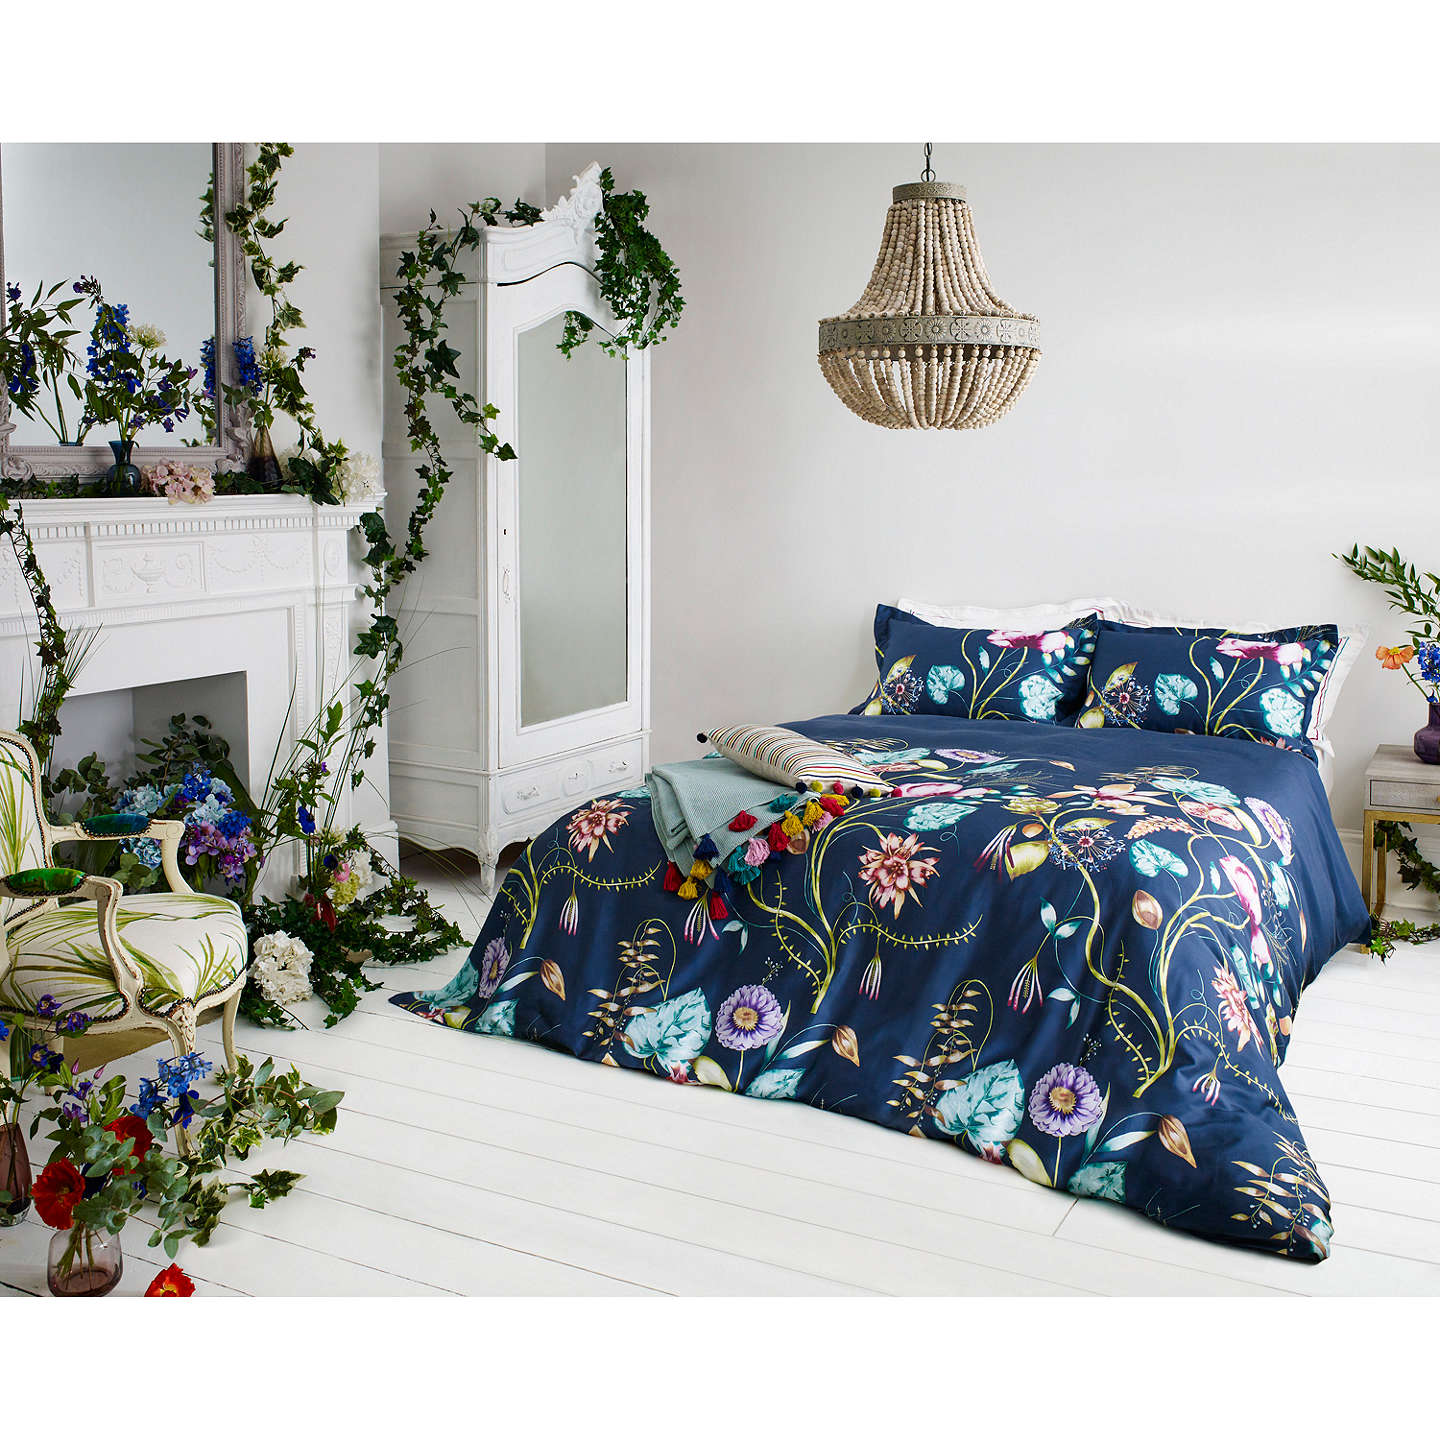 BuyHarlequin Quintessence Blue Floral Oxford Pillowcase Online at johnlewis.com